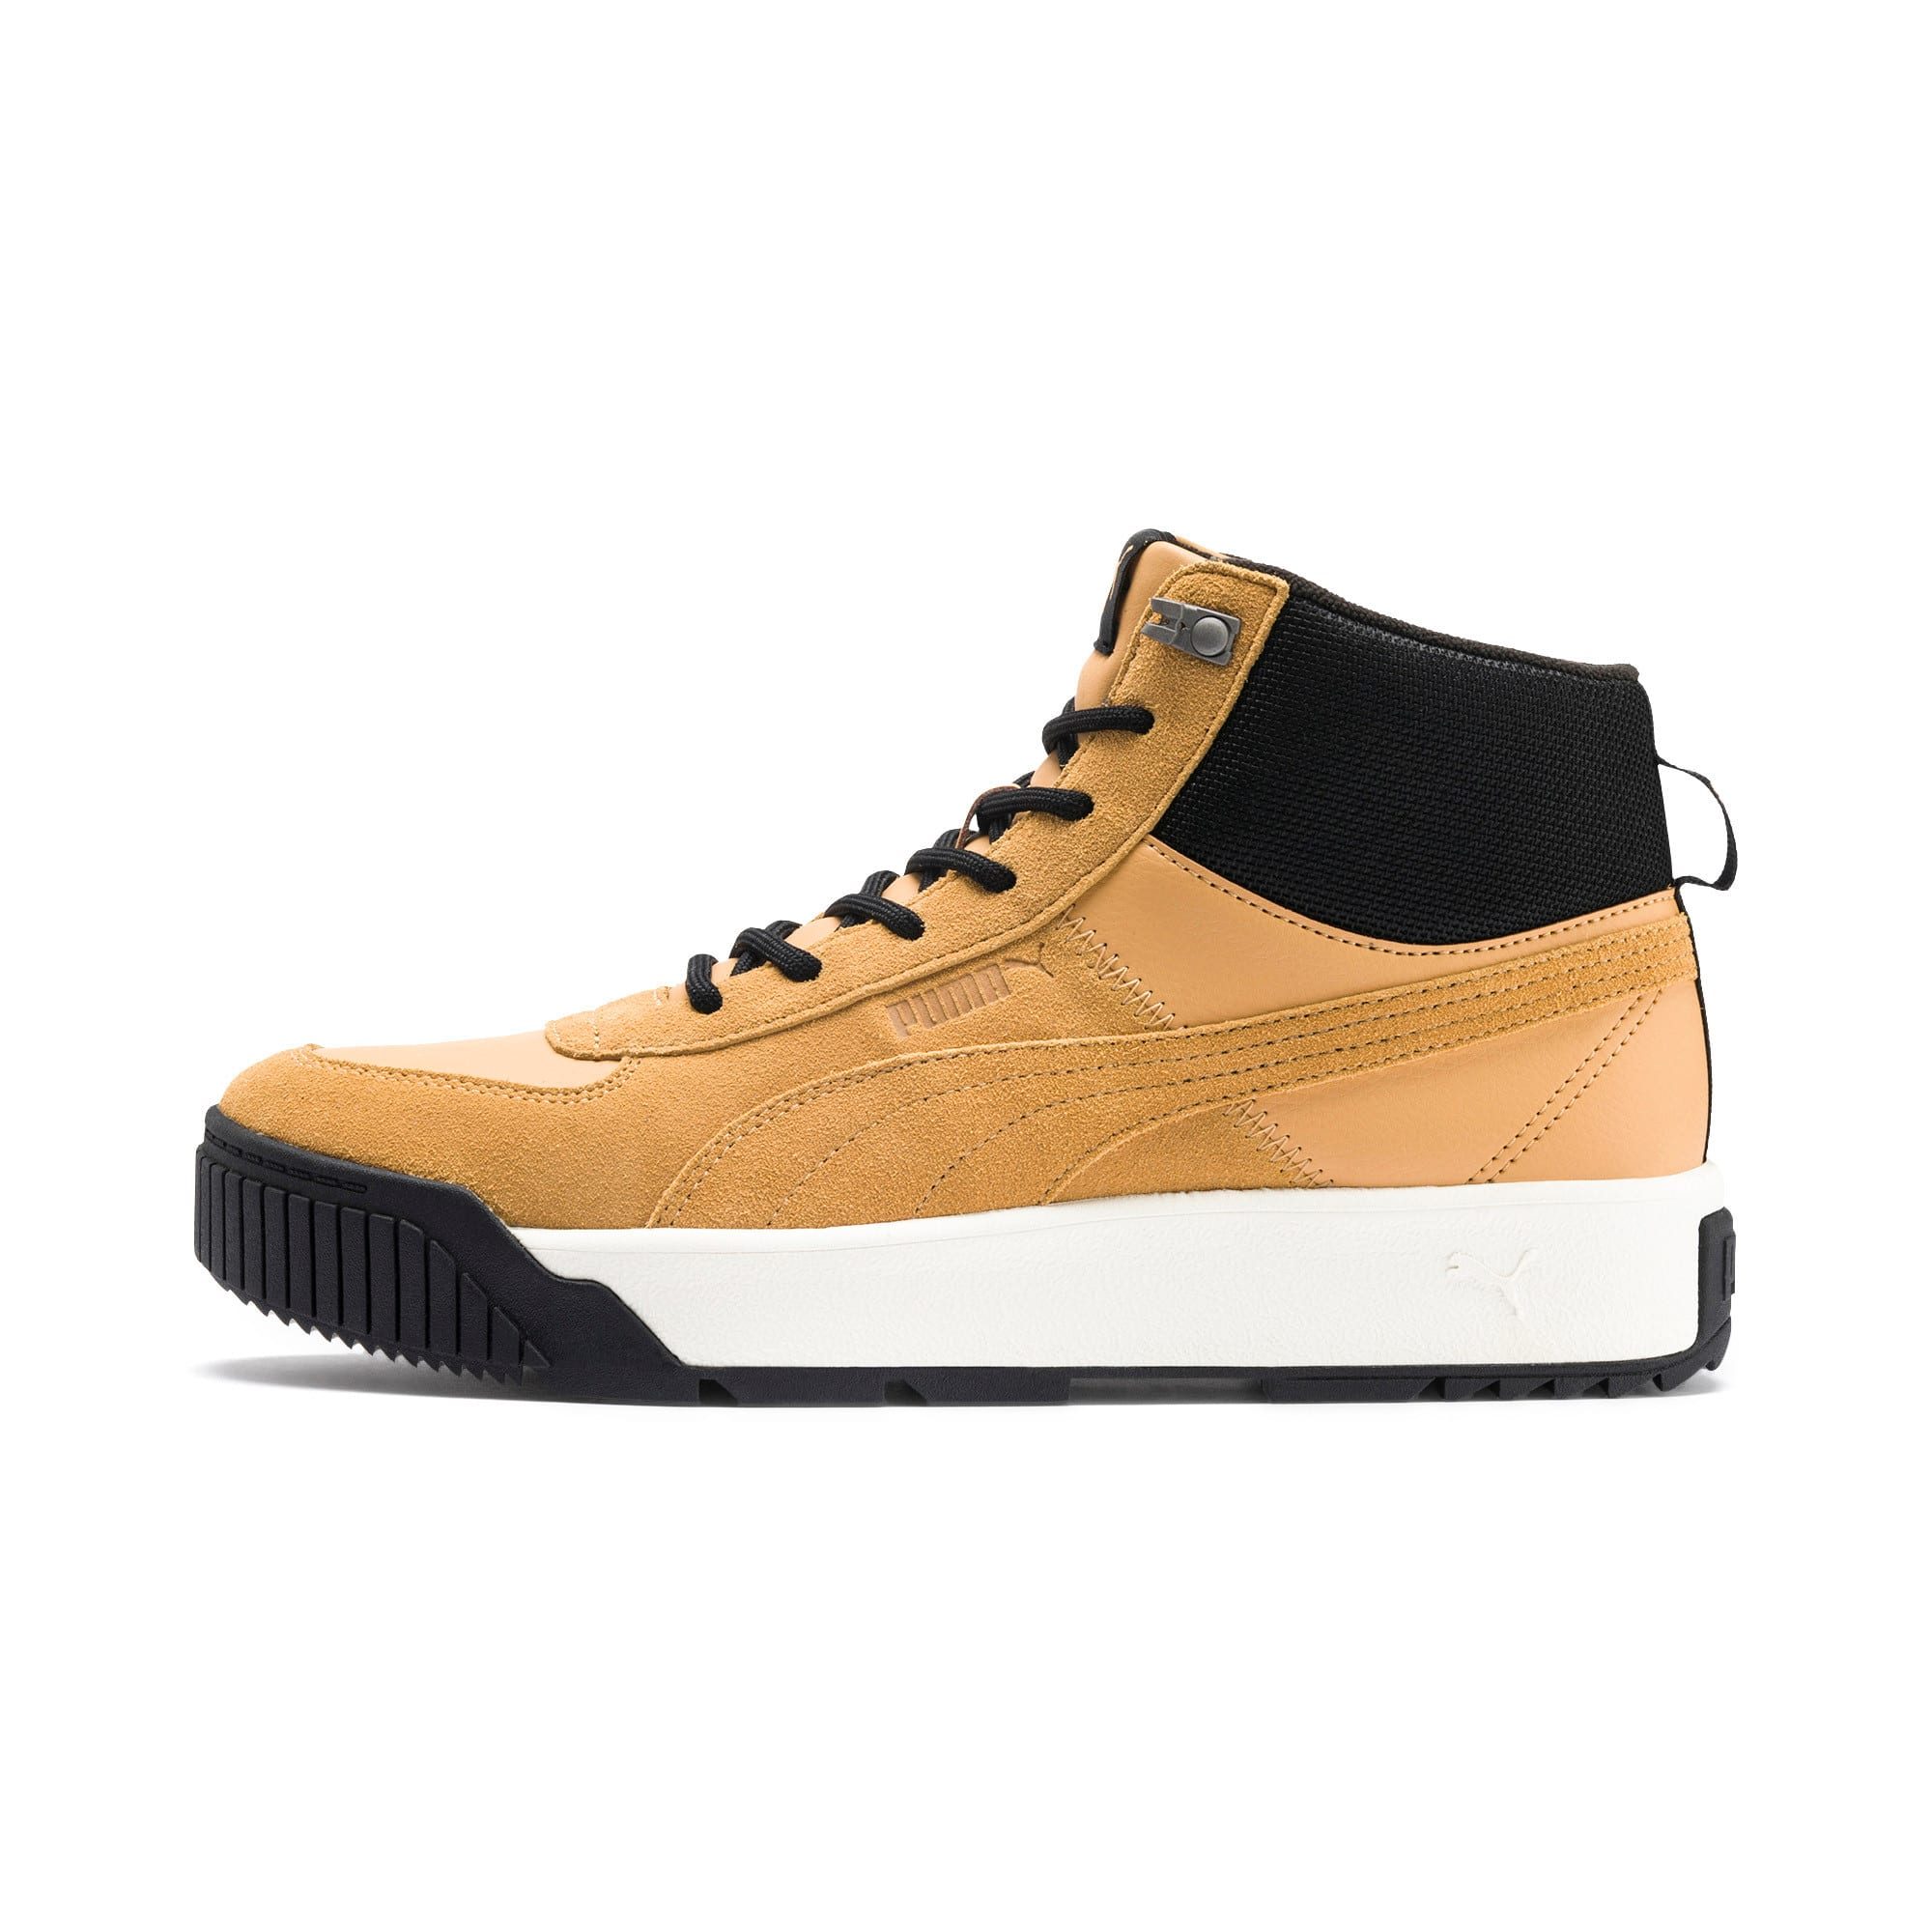 Stivali stile sneakers Tarrenz, Nero Taffy-Puma, Grande